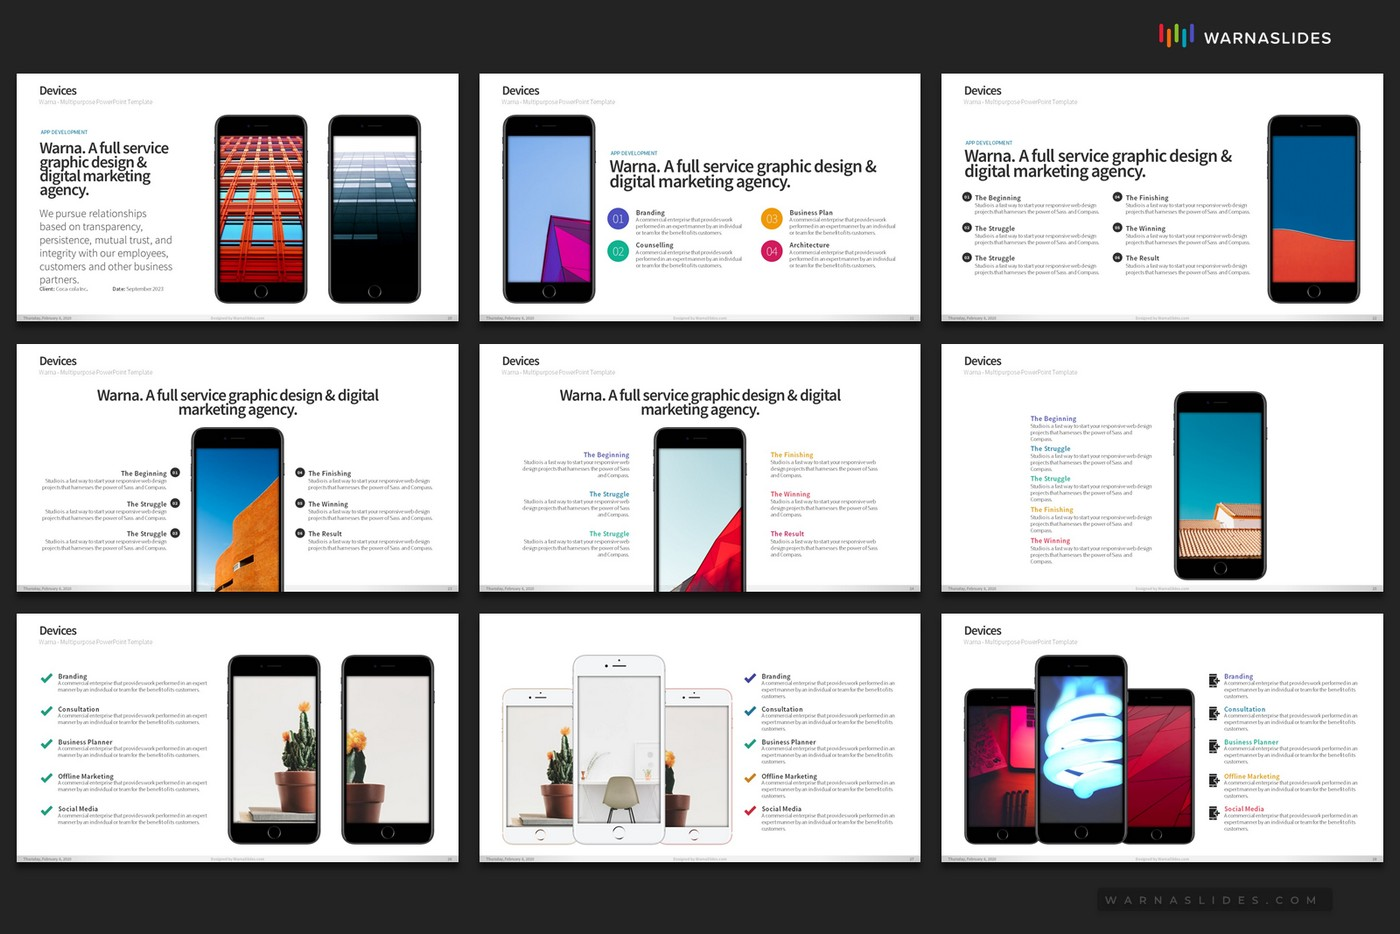 Devices-Smartphone-App-PowerPoint-Template-for-Business-Pitch-Deck-Professional-Creative-PowerPoint-Icons-008